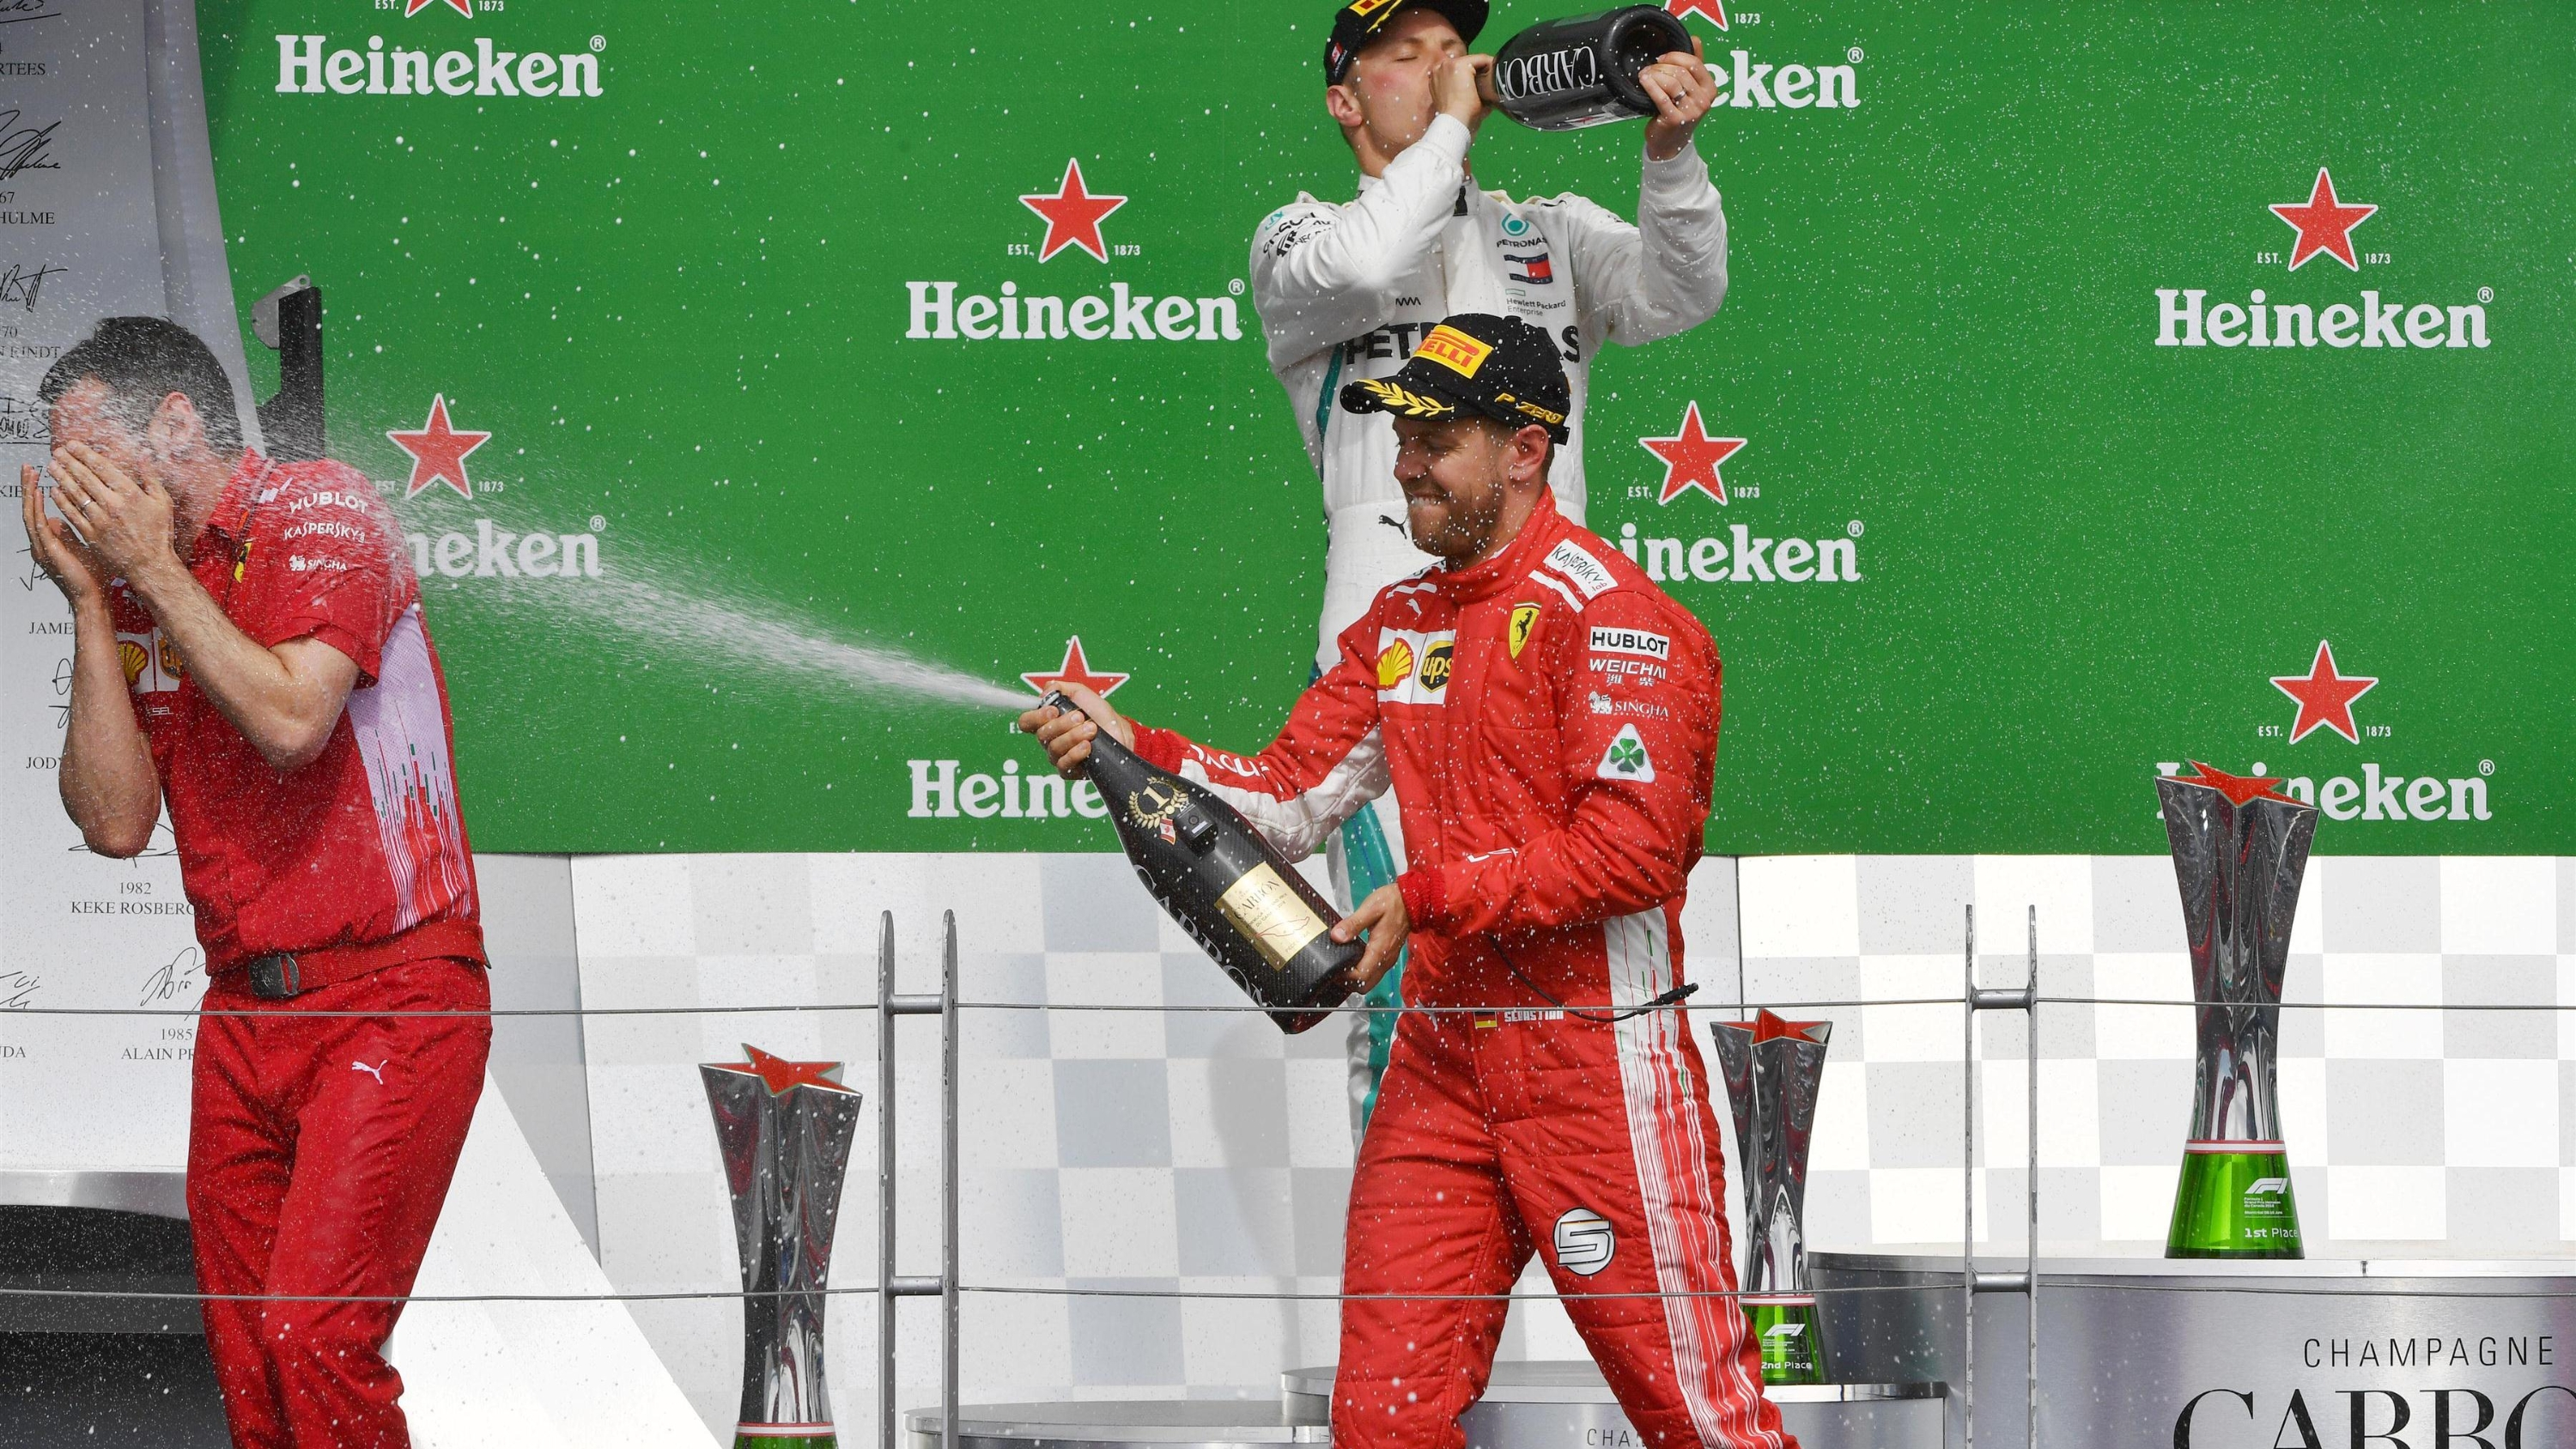 Hamilton wins French Grand Prix to retake lead in F1 title race